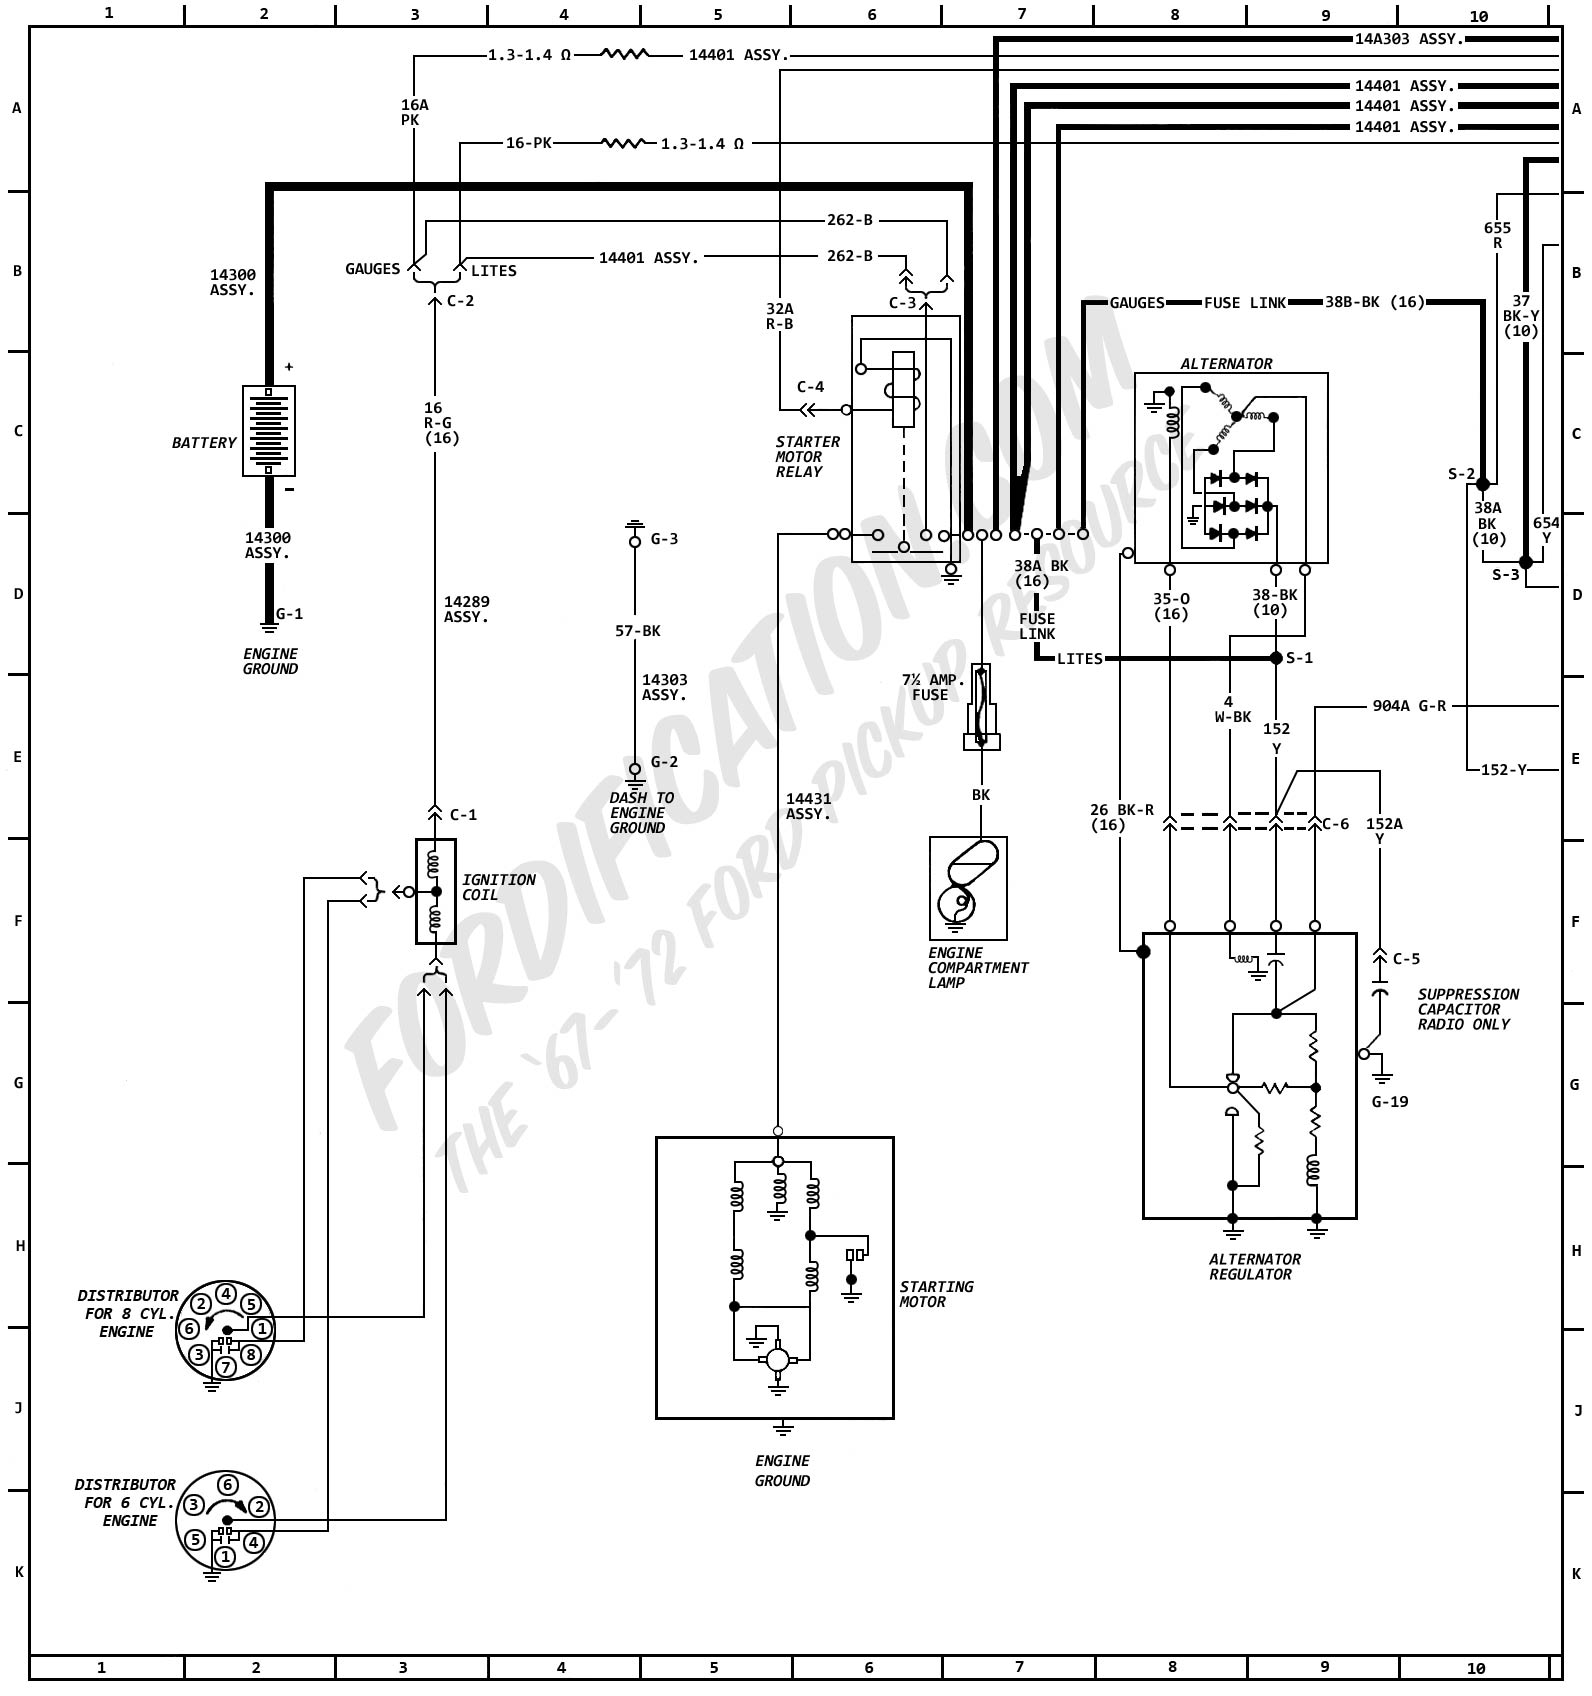 1972MasterWiring_01 1972 ford truck wiring diagrams fordification com 1971 ford f100 ignition switch wiring diagram at gsmx.co